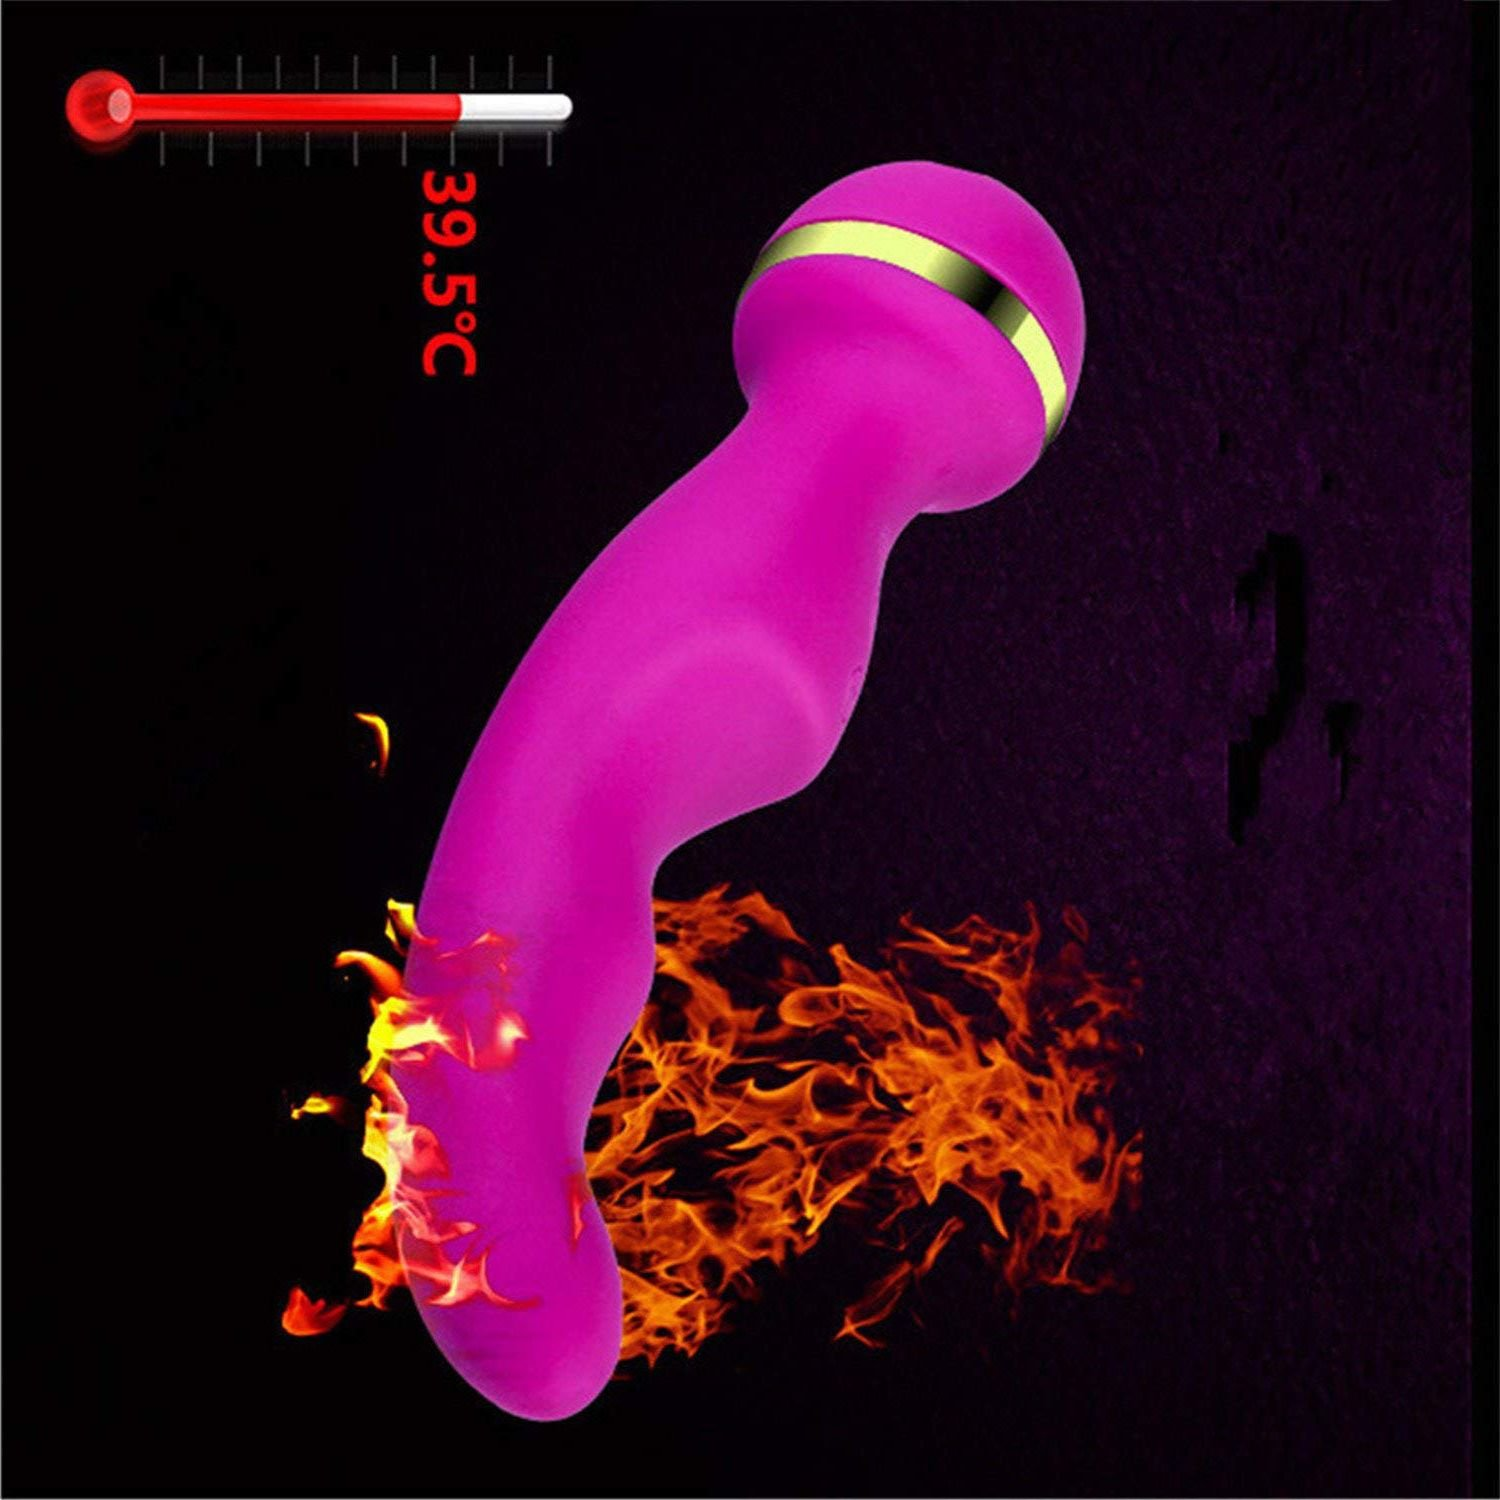 Amazon.com: Every-One USB Rechargeable Av Sex Toys G Spot Vibrator ...